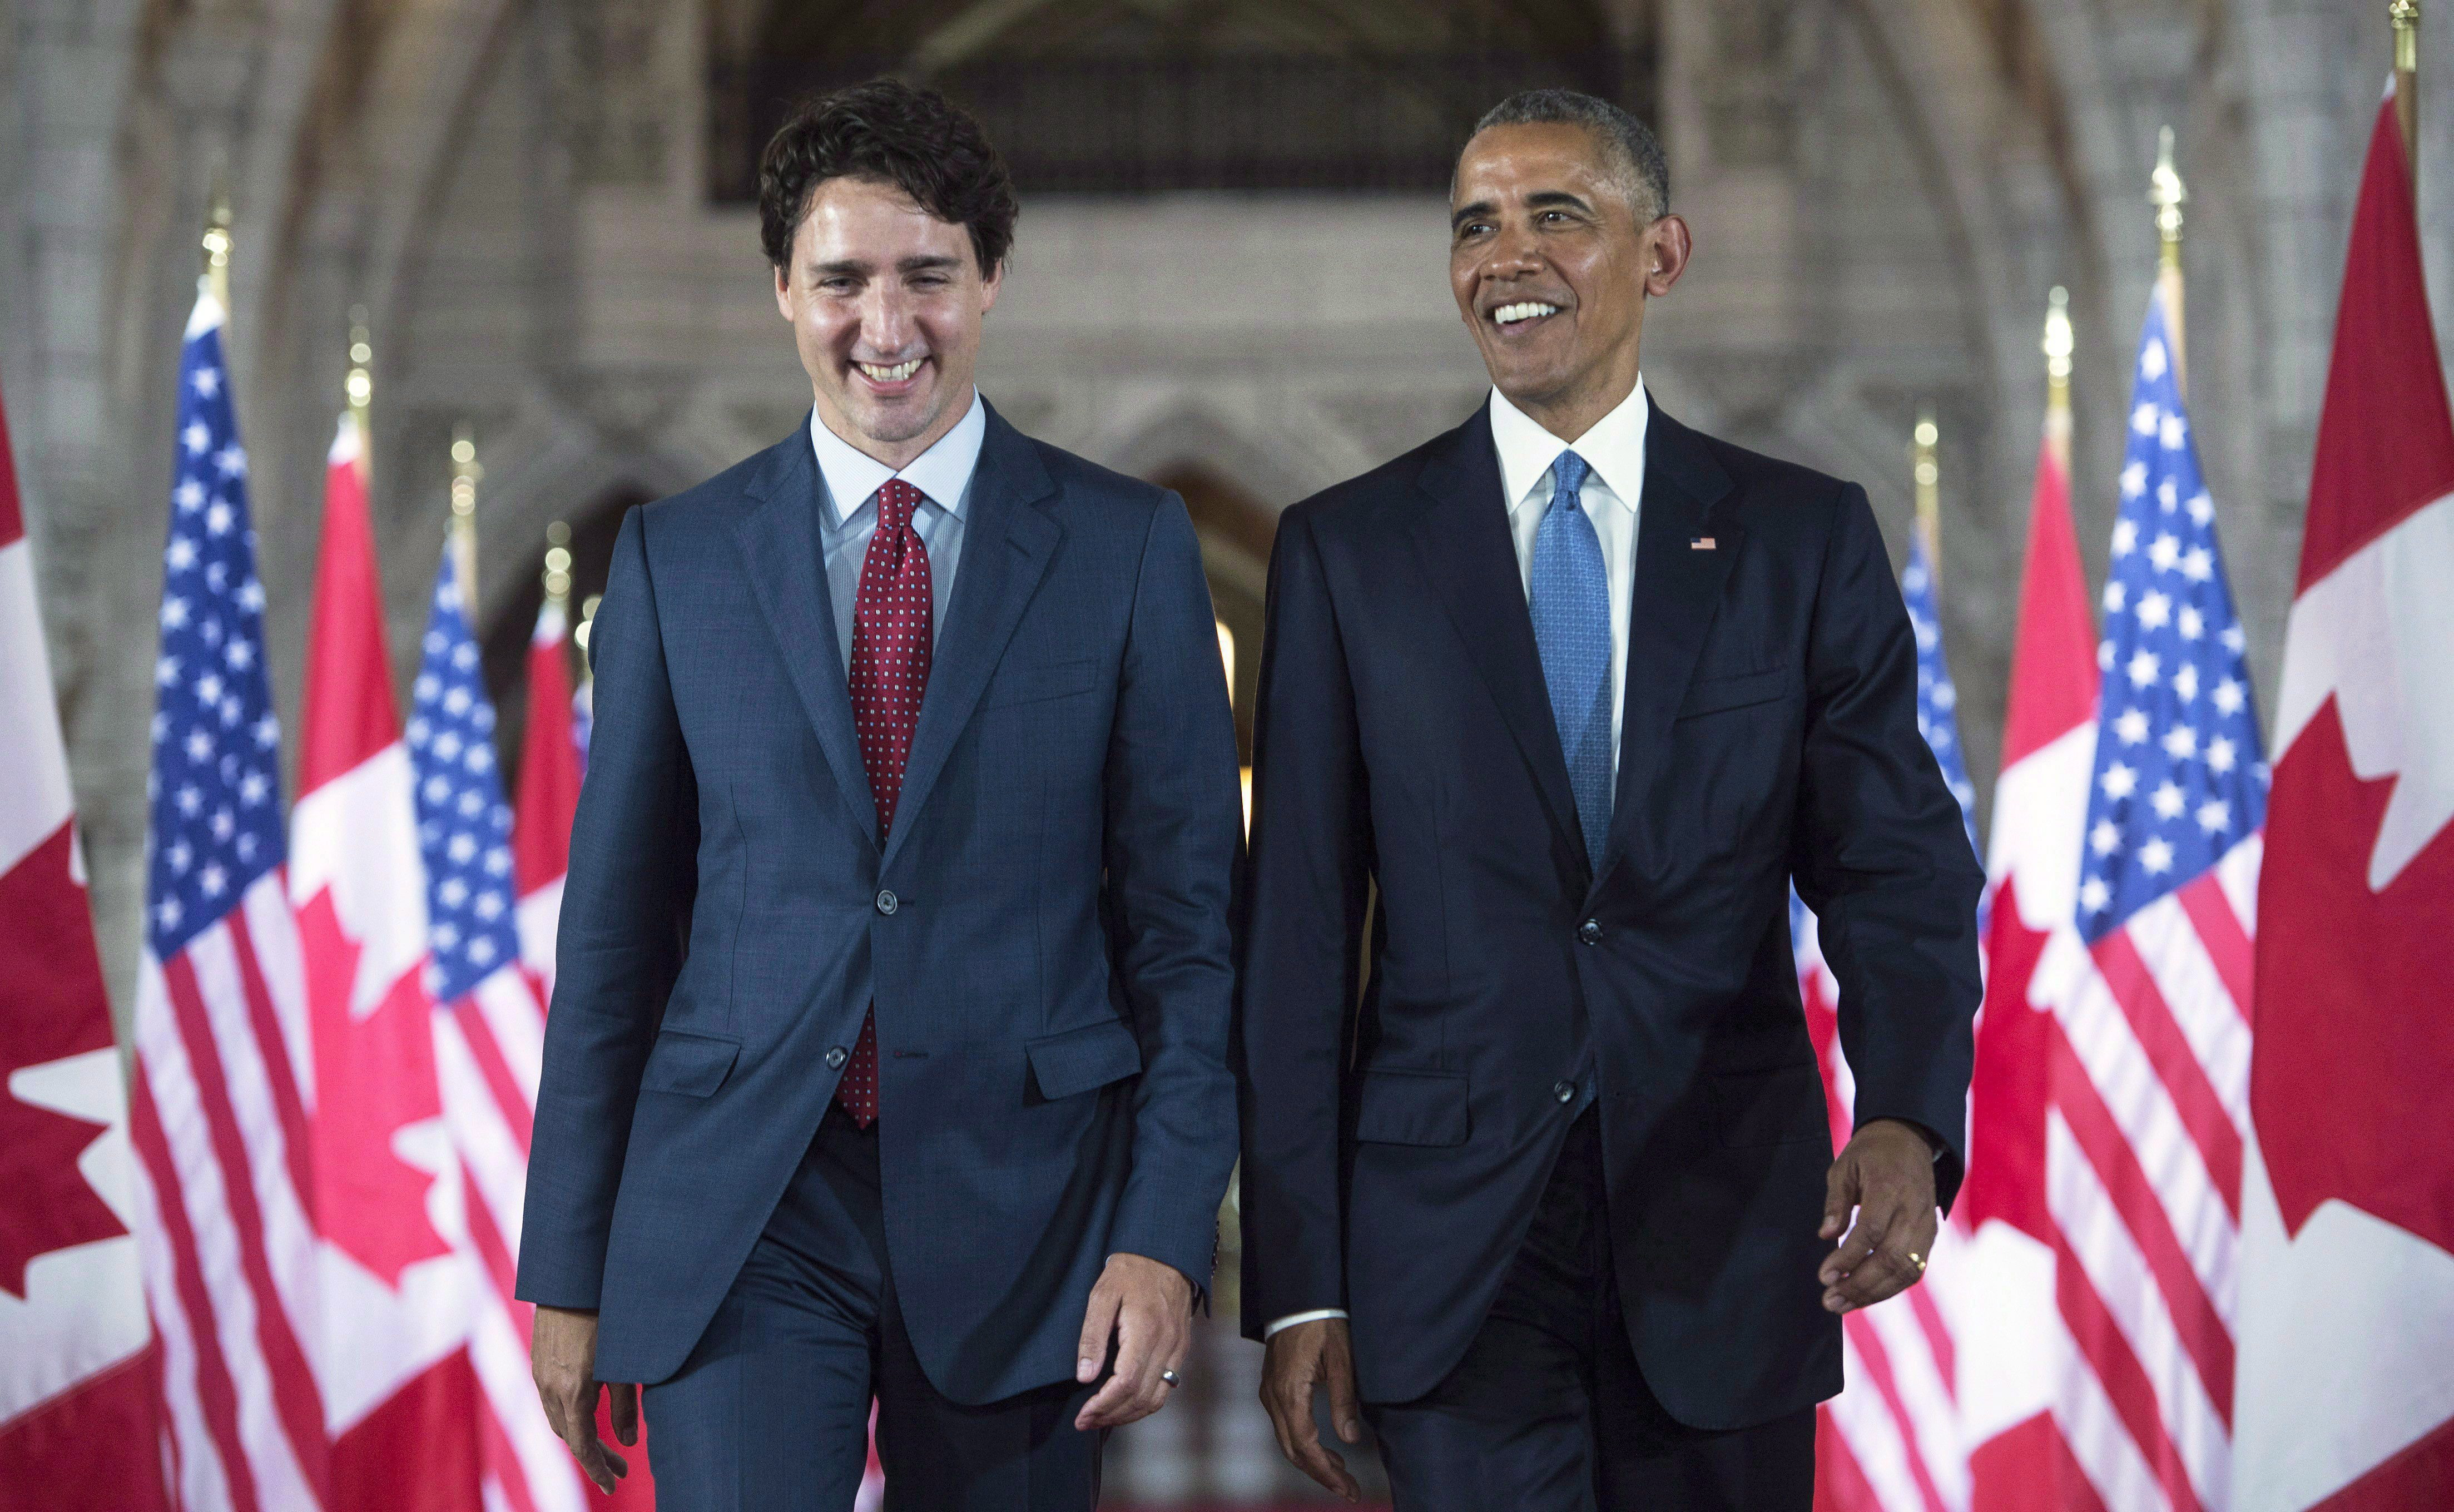 Barack Obama endorses Trudeau for second term